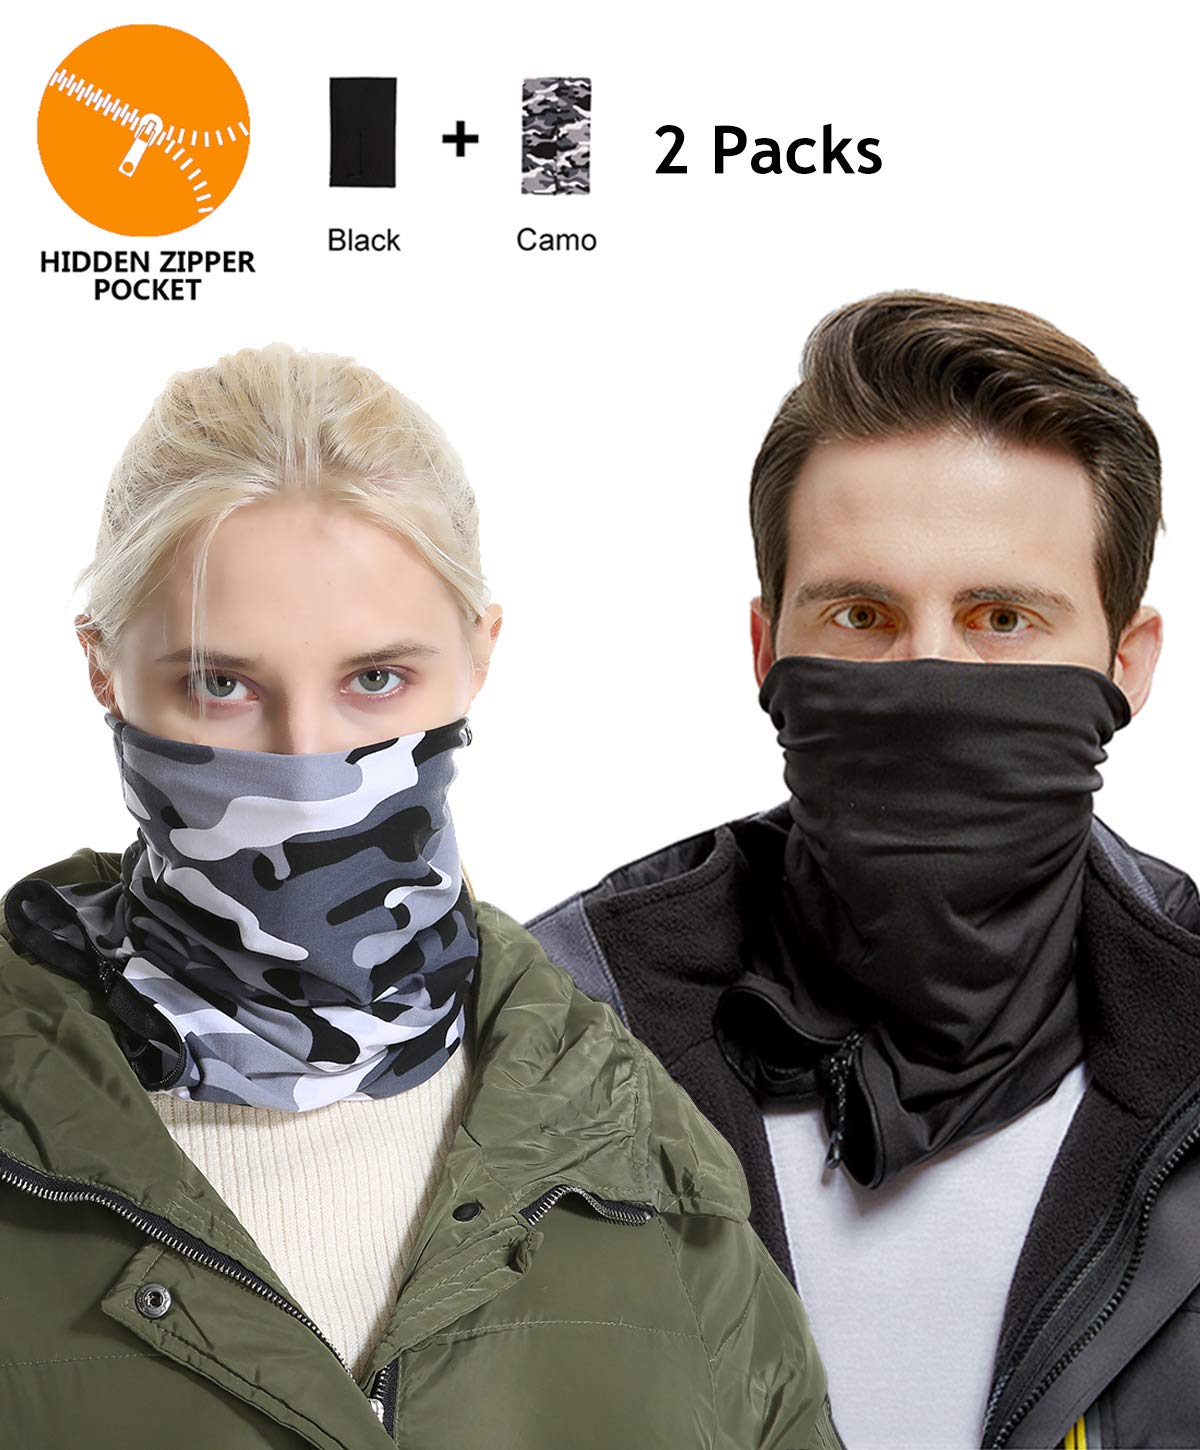 Lightweight Neck Gaiter Warmer Mask - Black Camo Women Men Kids Conversible Infinity hidden zipper pocket scarf Thermal Cycling Running Bandana Cold Wind, Dirt Outdoor Sport